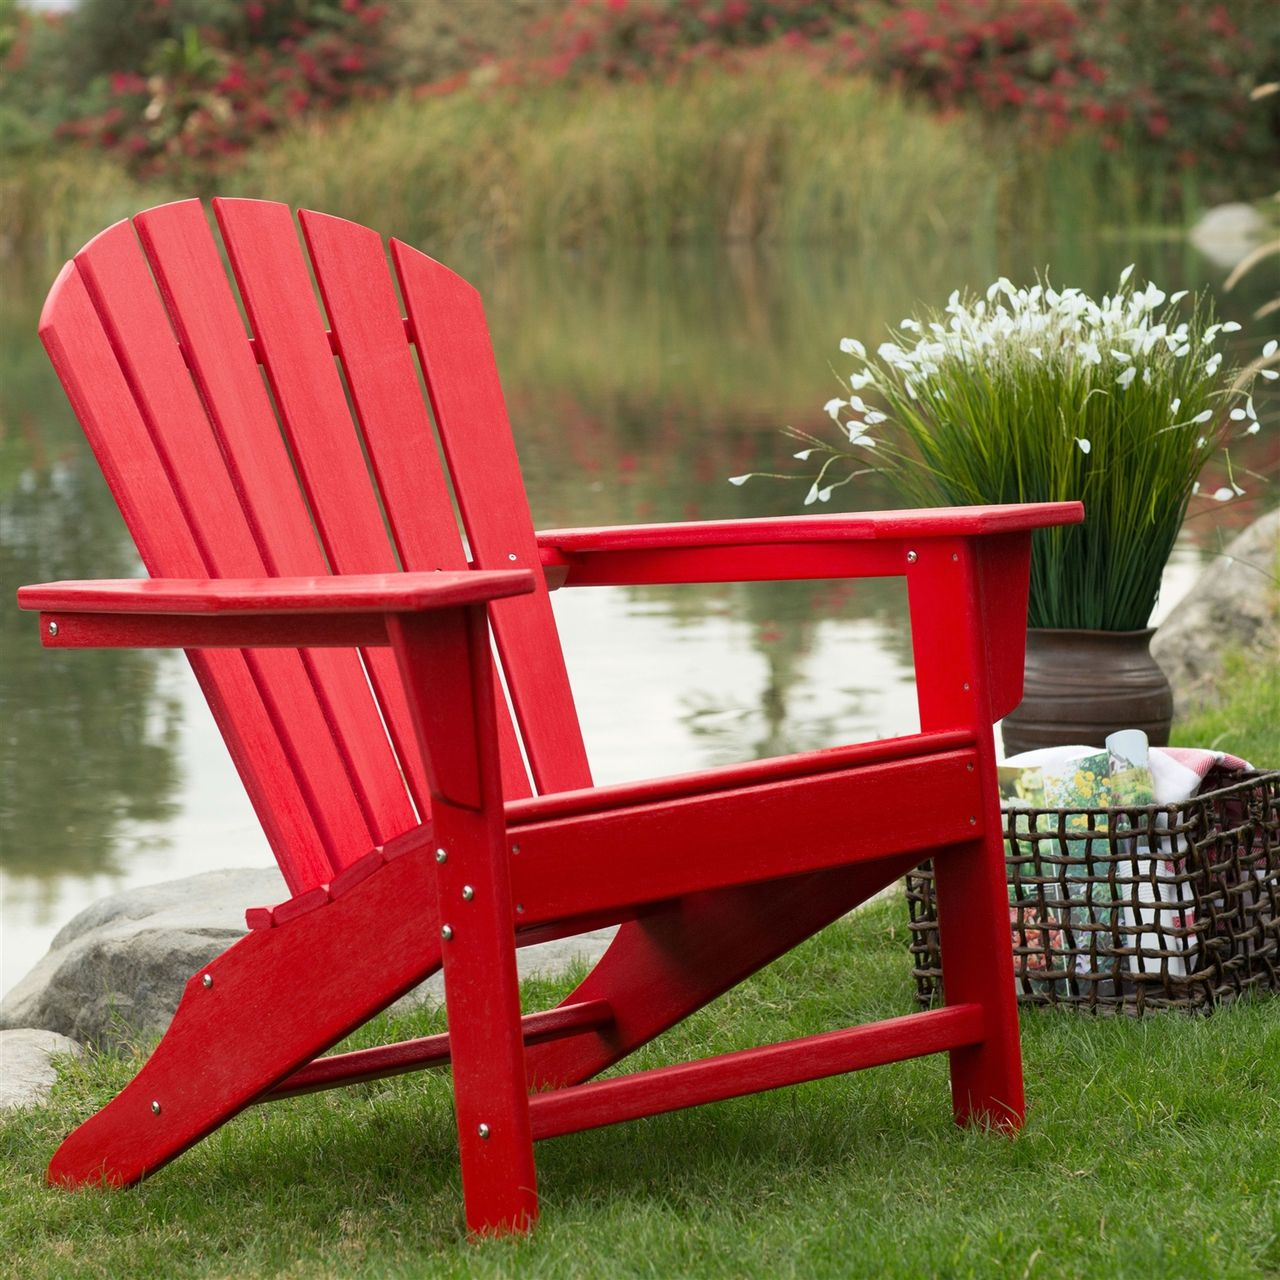 Outdoor Patio Seating Garden Adirondack Chair In Red Heavy Duty